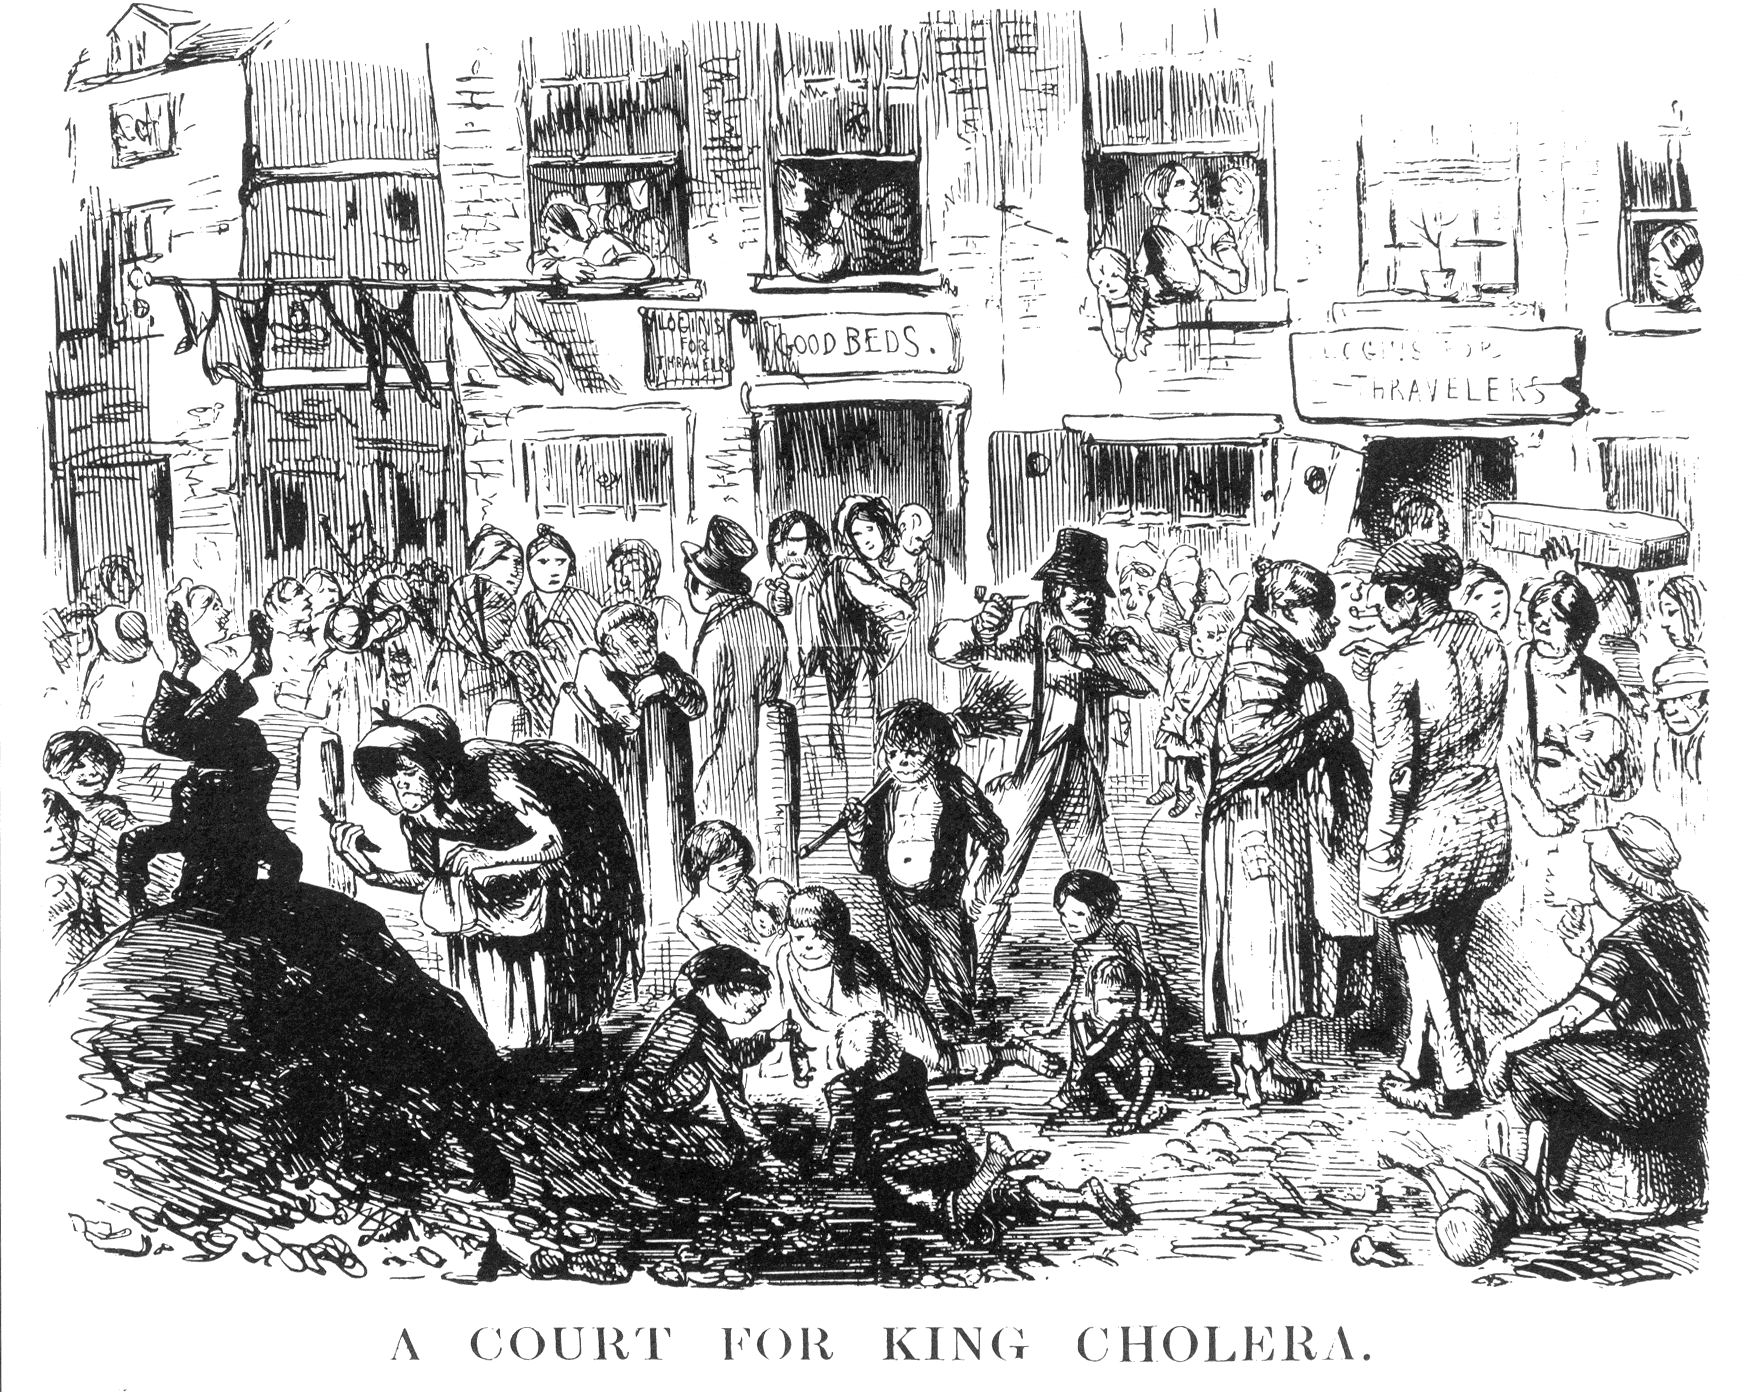 Χολέρα. A Court for King Cholera. Illustration from Punch (1852).